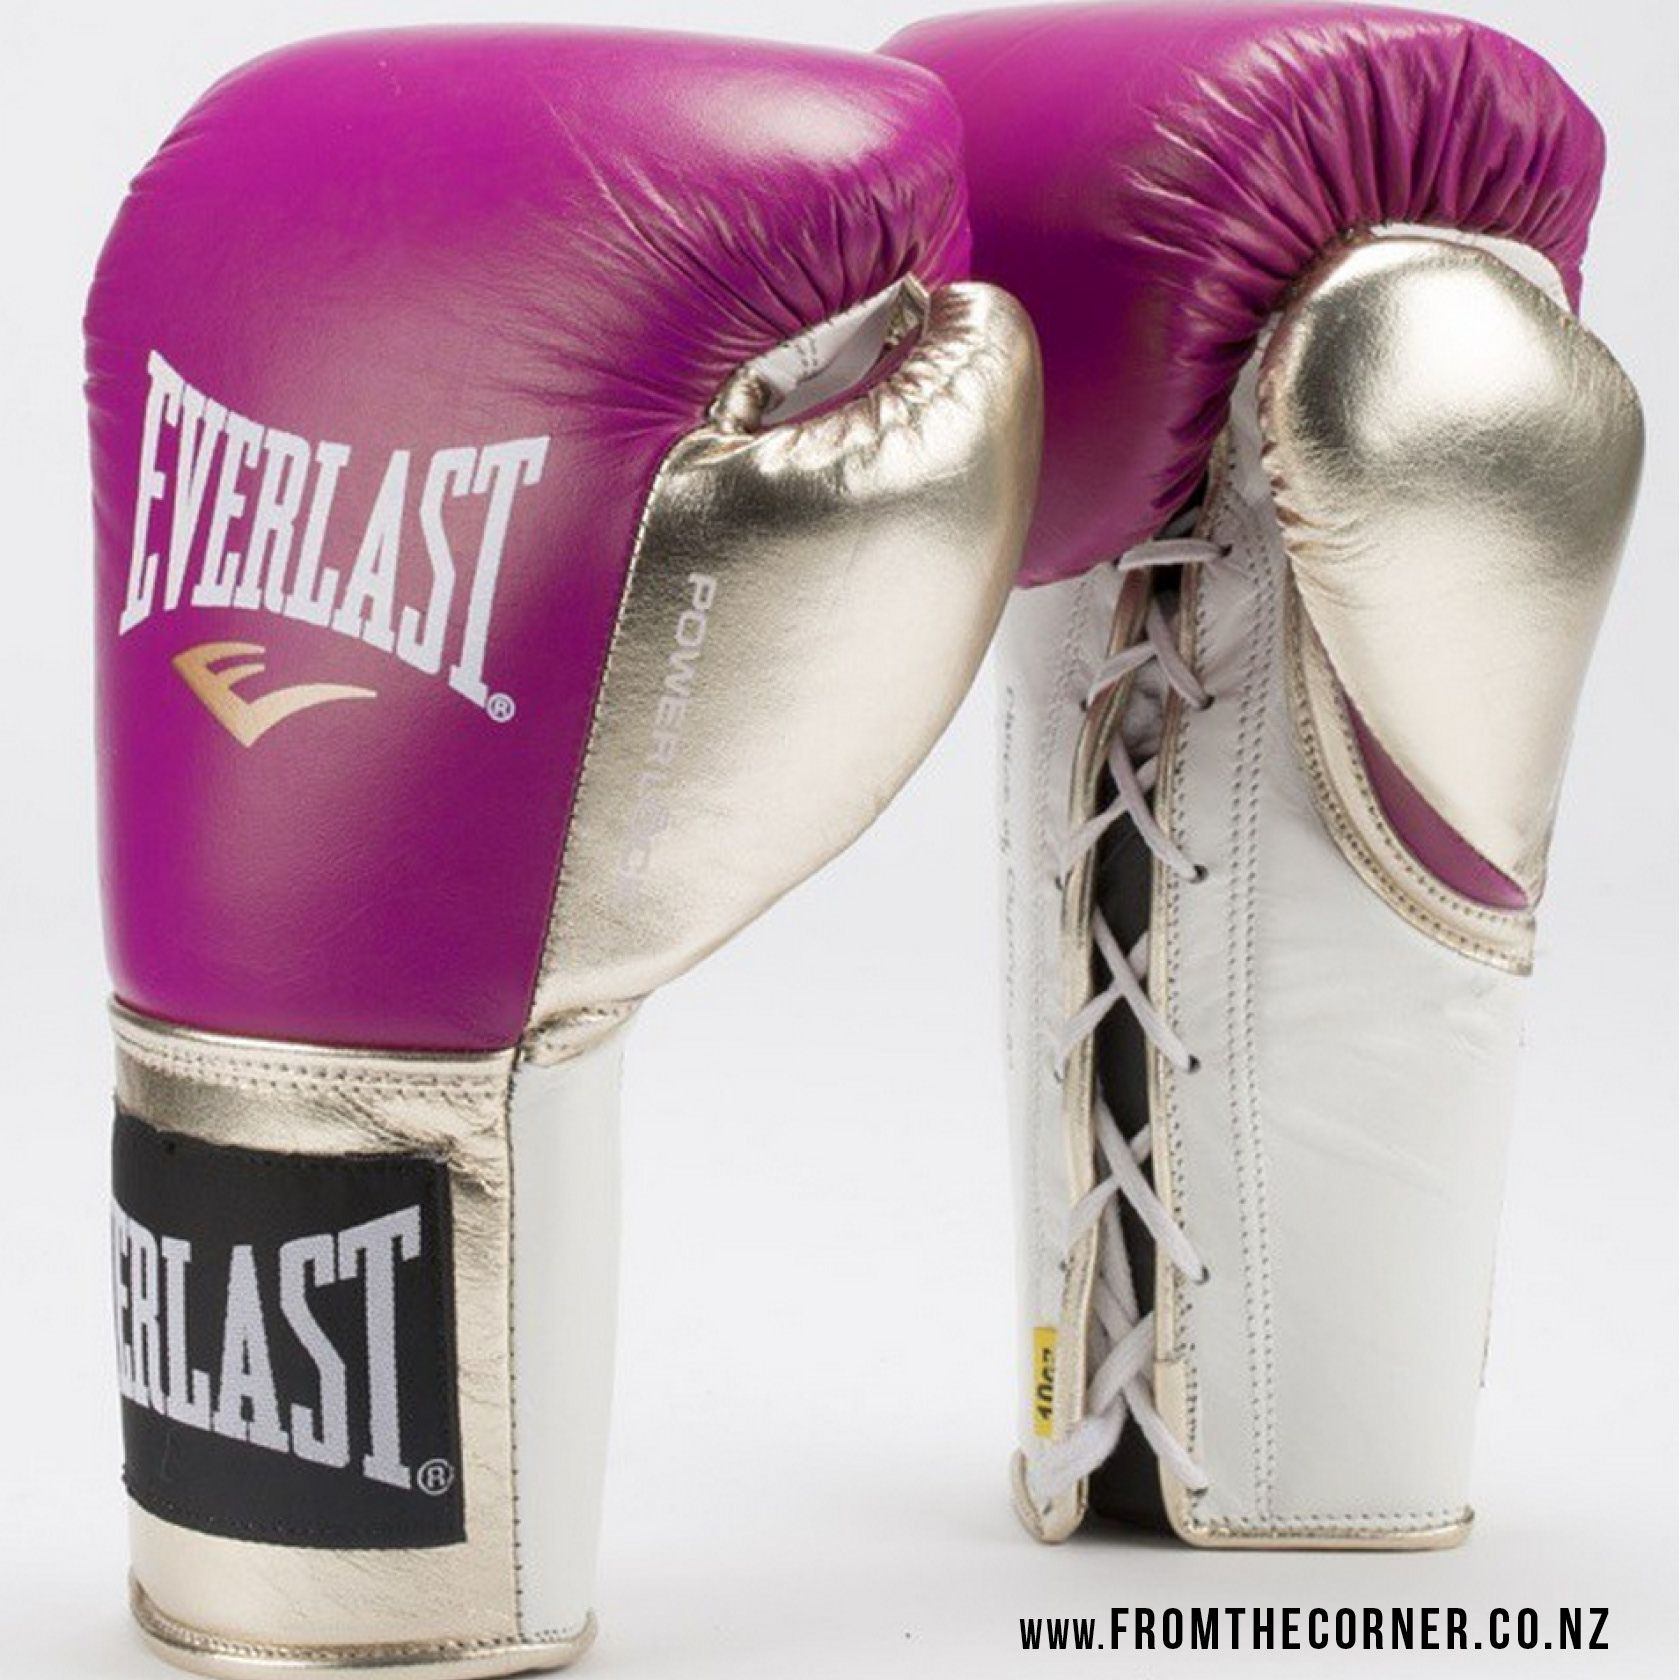 Personalized Fitness Gloves: Custom-made Purple And Gold Everlast PowerLock Boxing